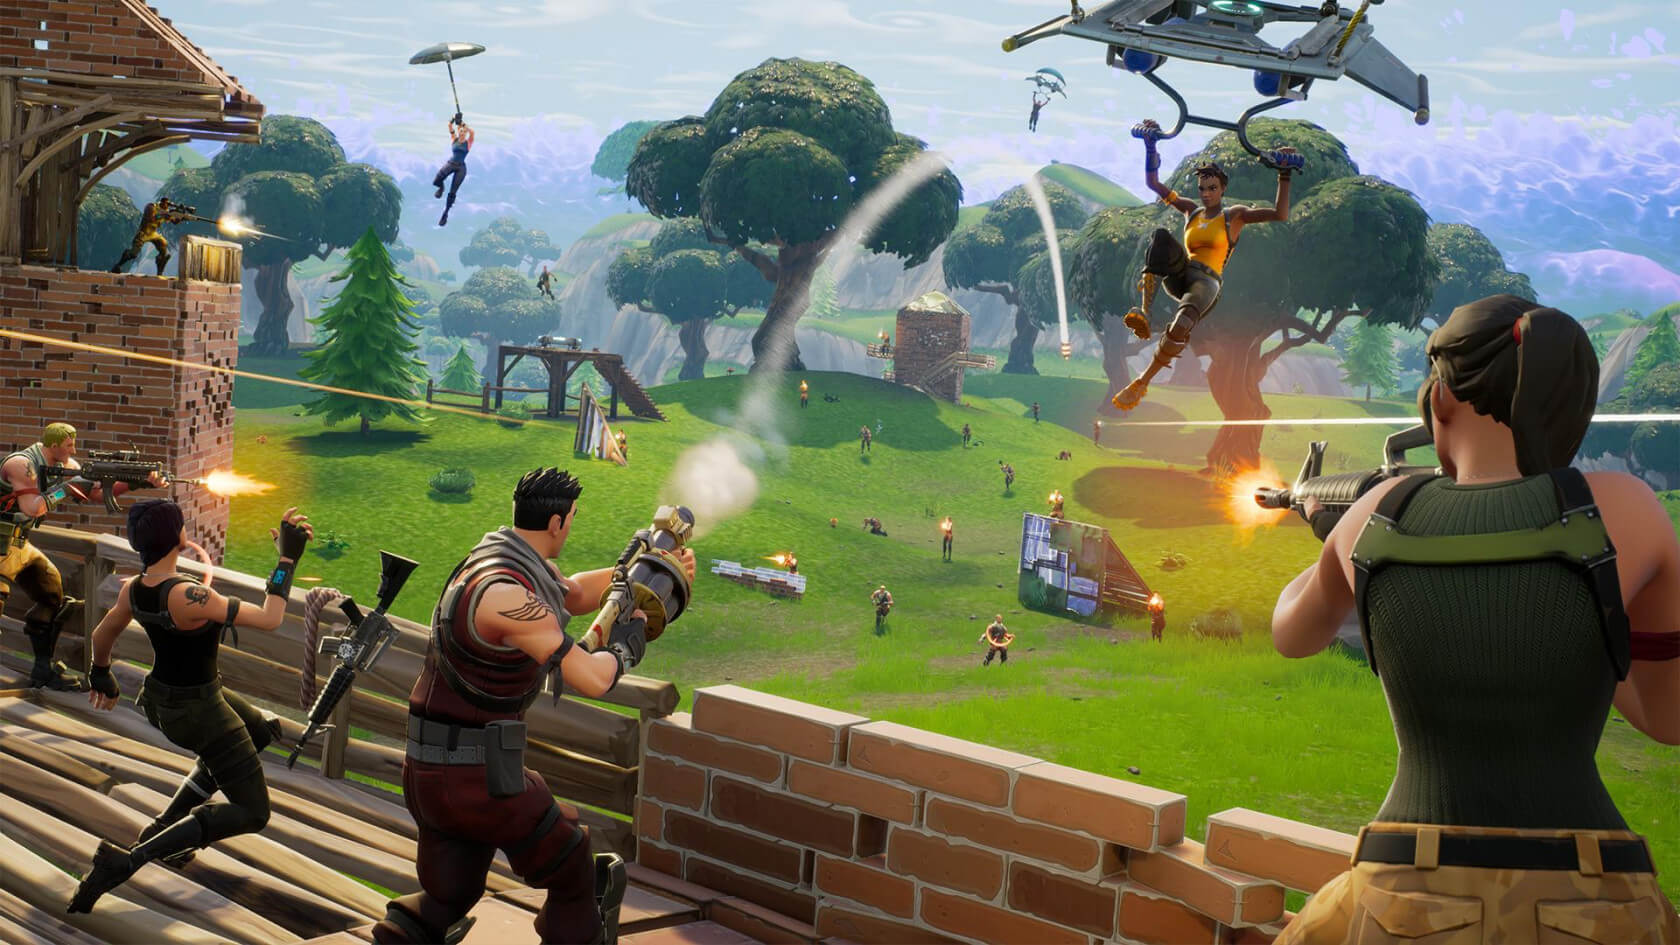 battle-royale-games:-what-are-the-best-games-like-fortnite?